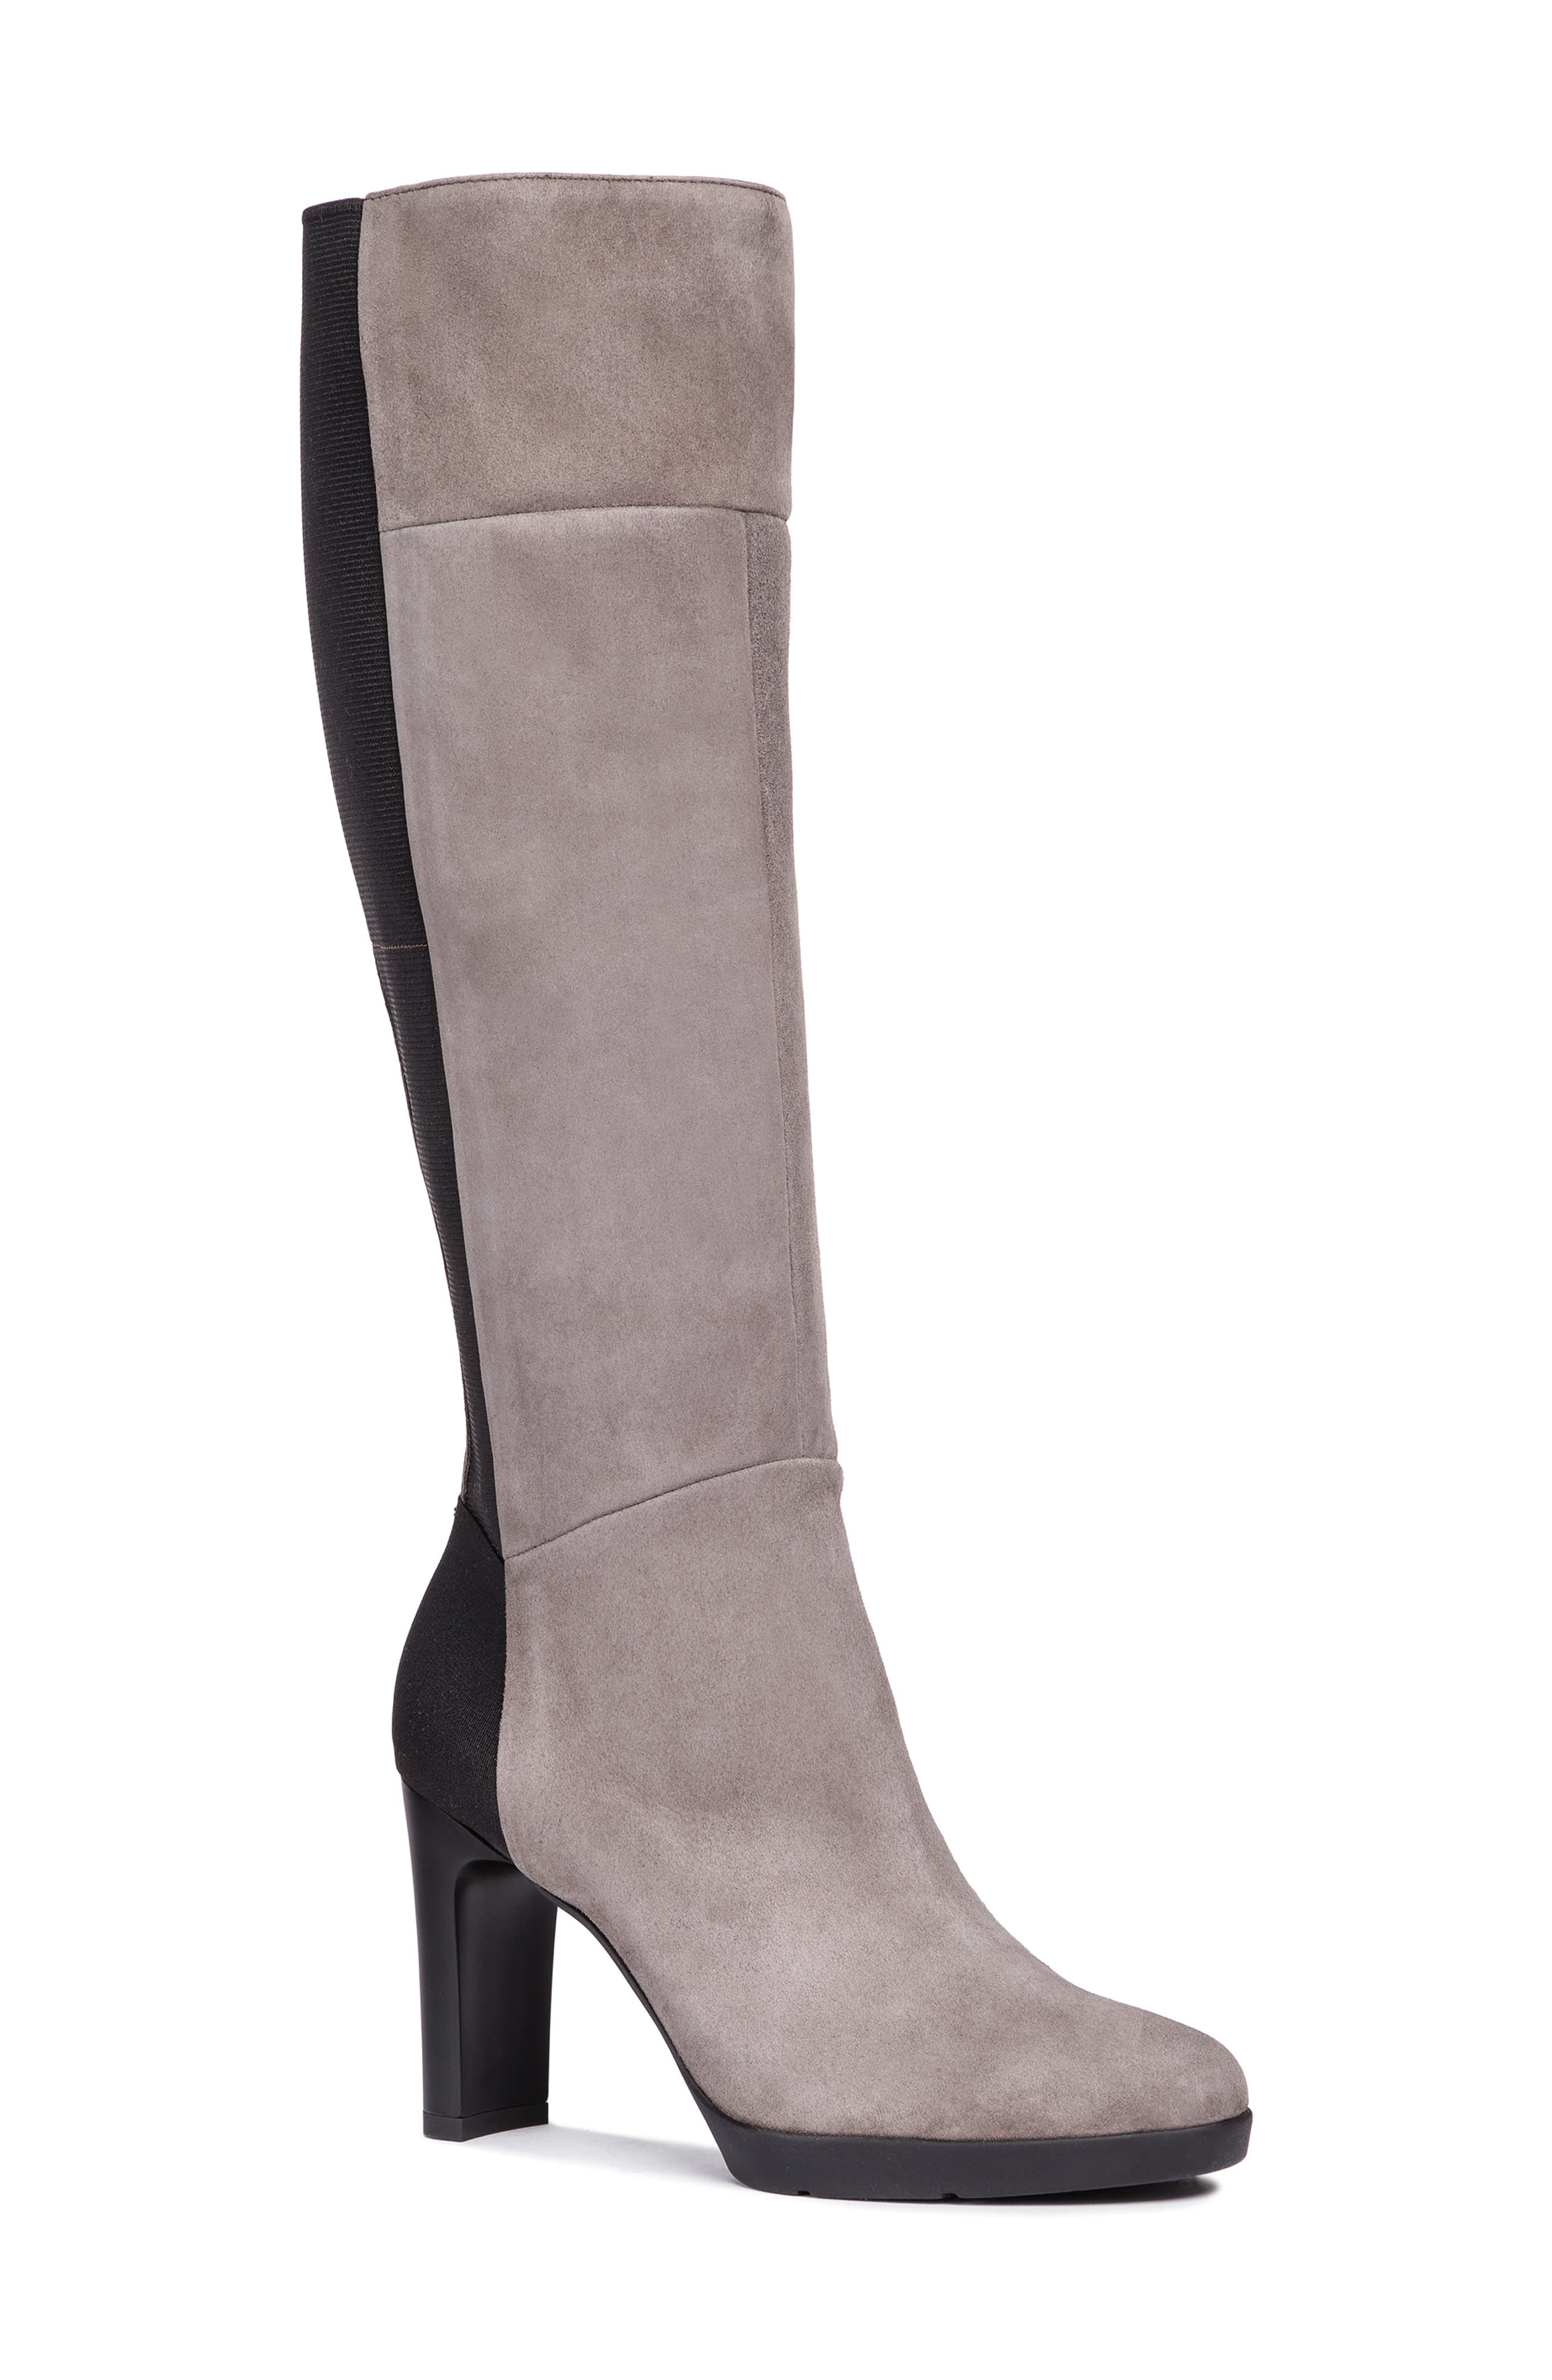 GEOX,                             Annya Knee High Boot,                             Main thumbnail 1, color,                             CHESTNUT SUEDE